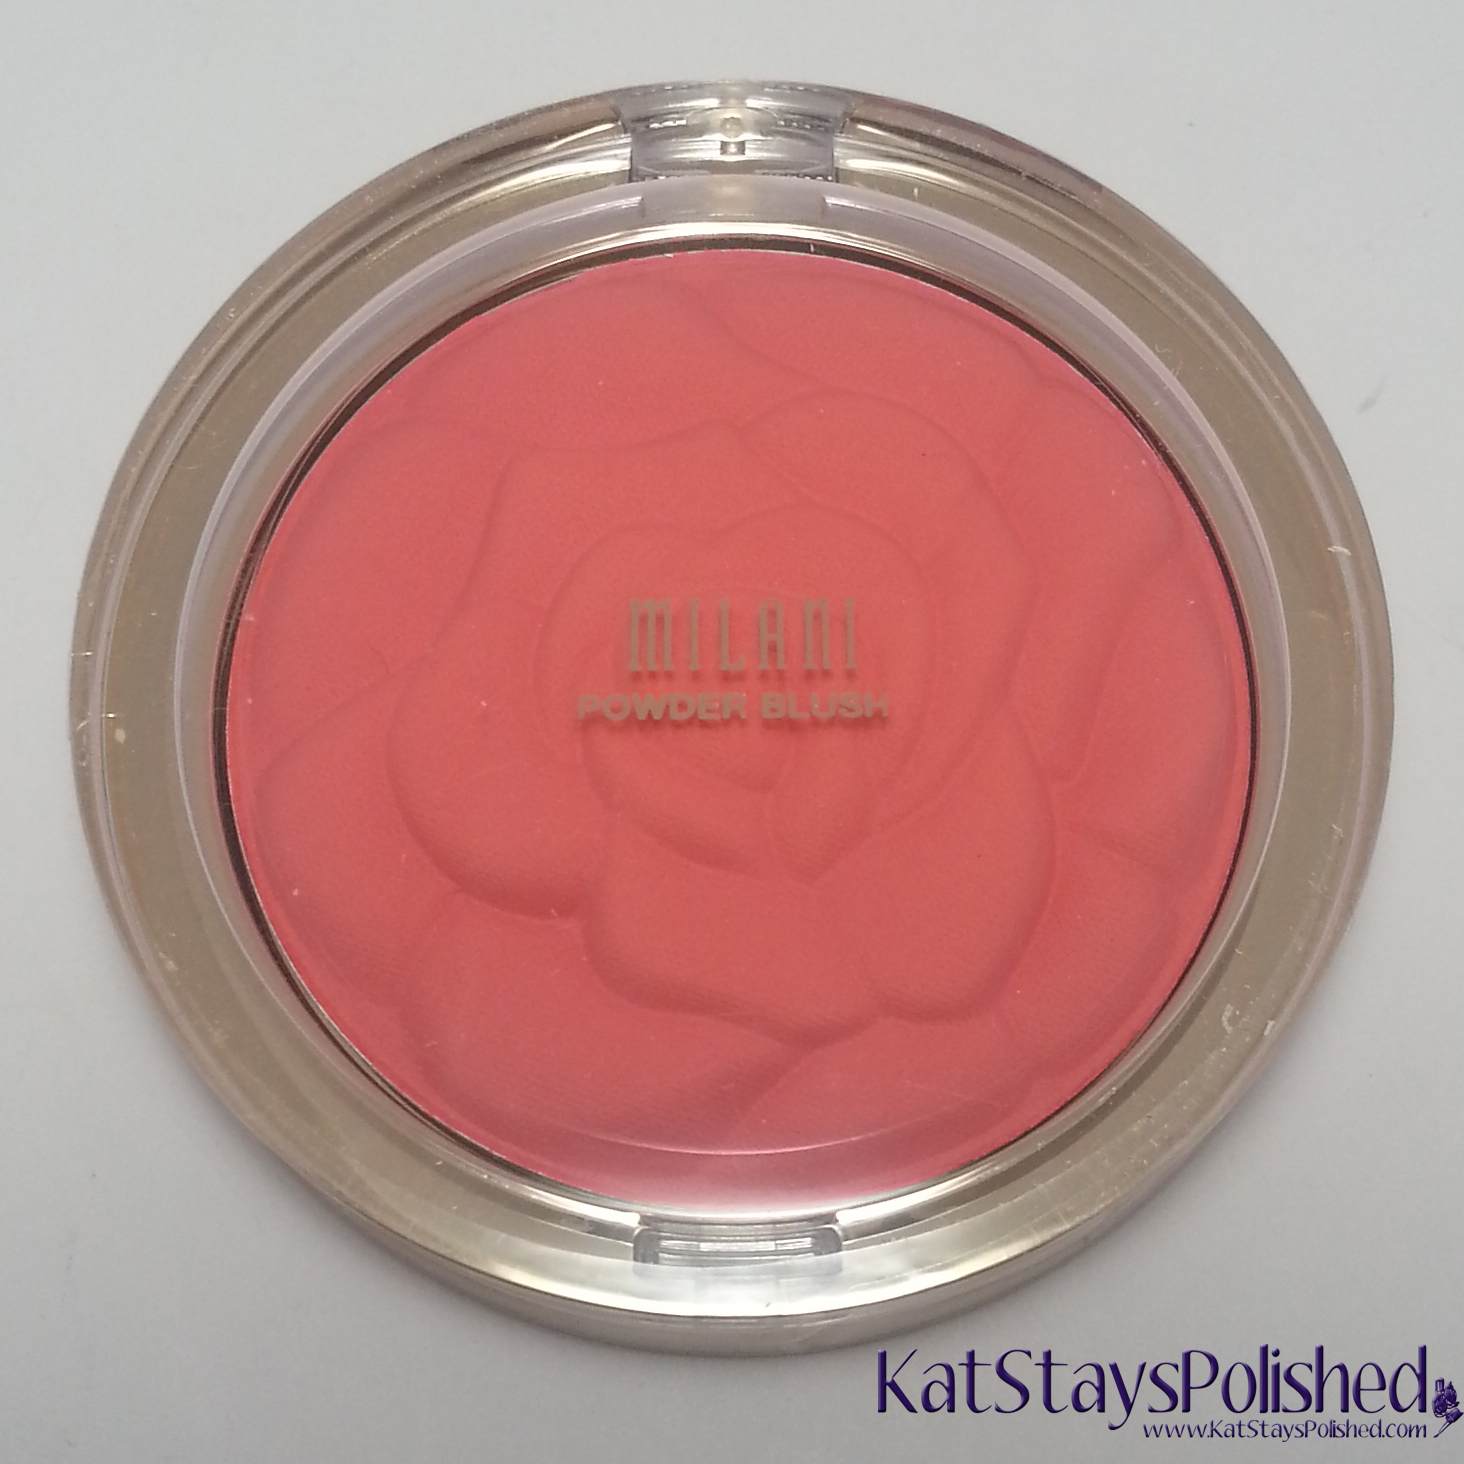 Milani Rose Powder Blush - Coral Cove | Kat Stays Polished